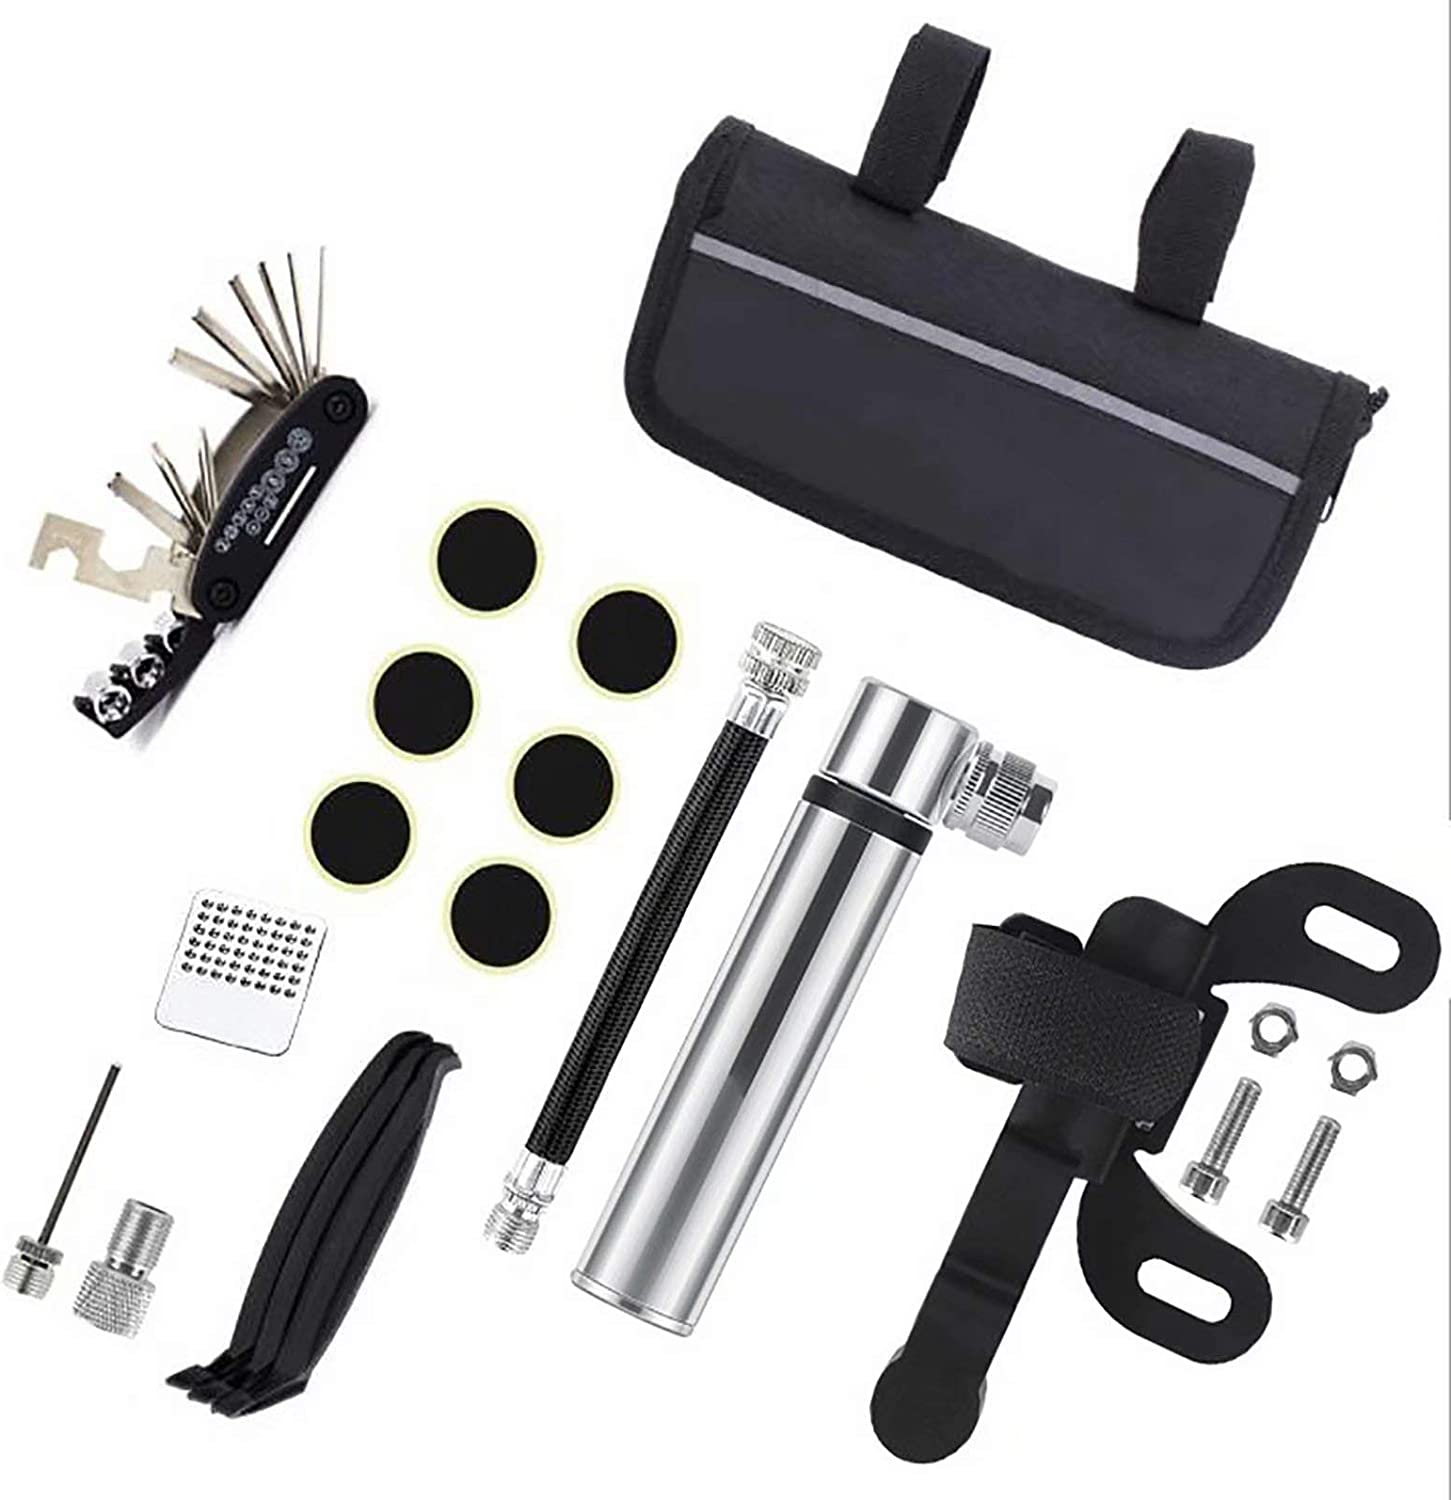 CHENSQ Ranking TOP17 Bicycle Tool kit Multi-Function Repair Excellent